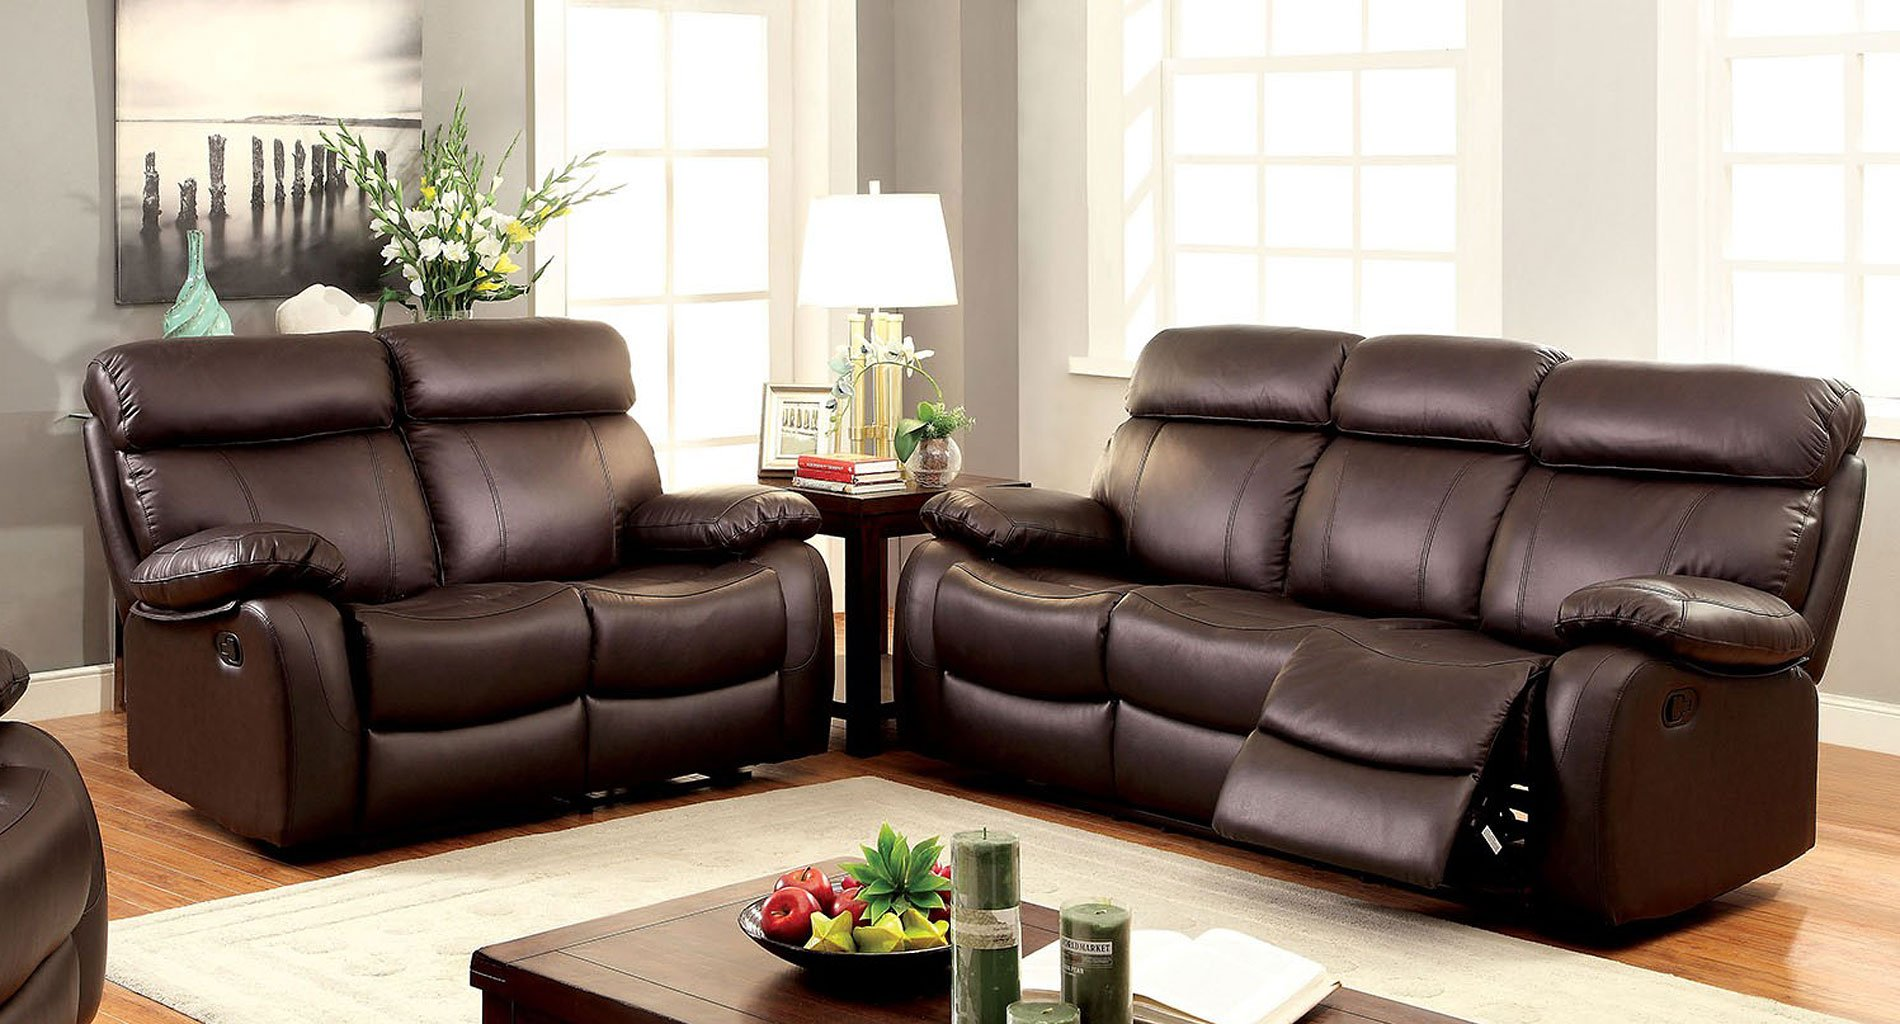 Myrtle reclining living room set living room sets Reclining living room furniture